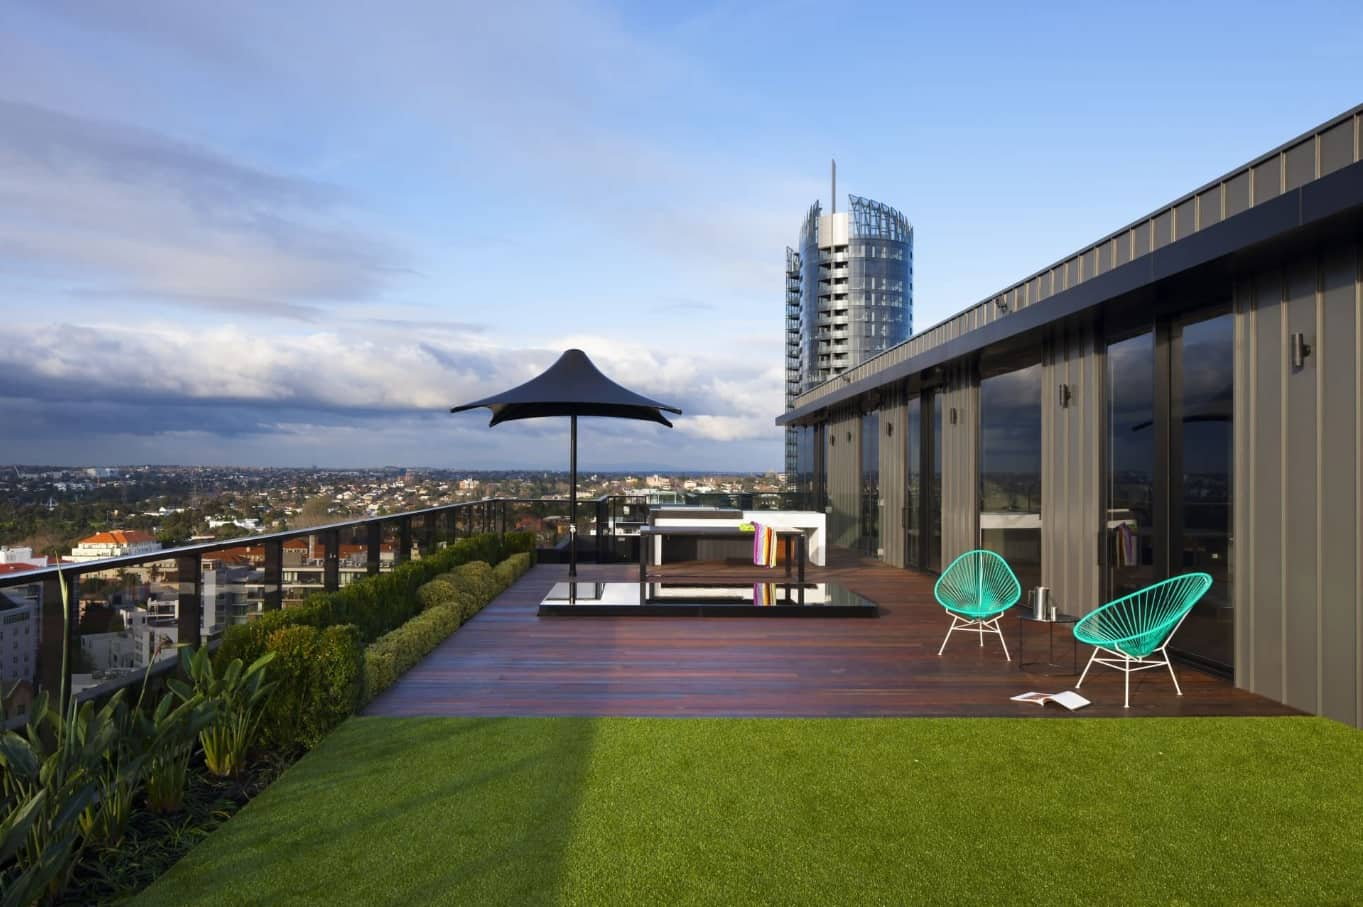 Top 10 Small Apartment Patio Ideas with Photos. A real-life lawn at the top of the skyscraper with the patio zone